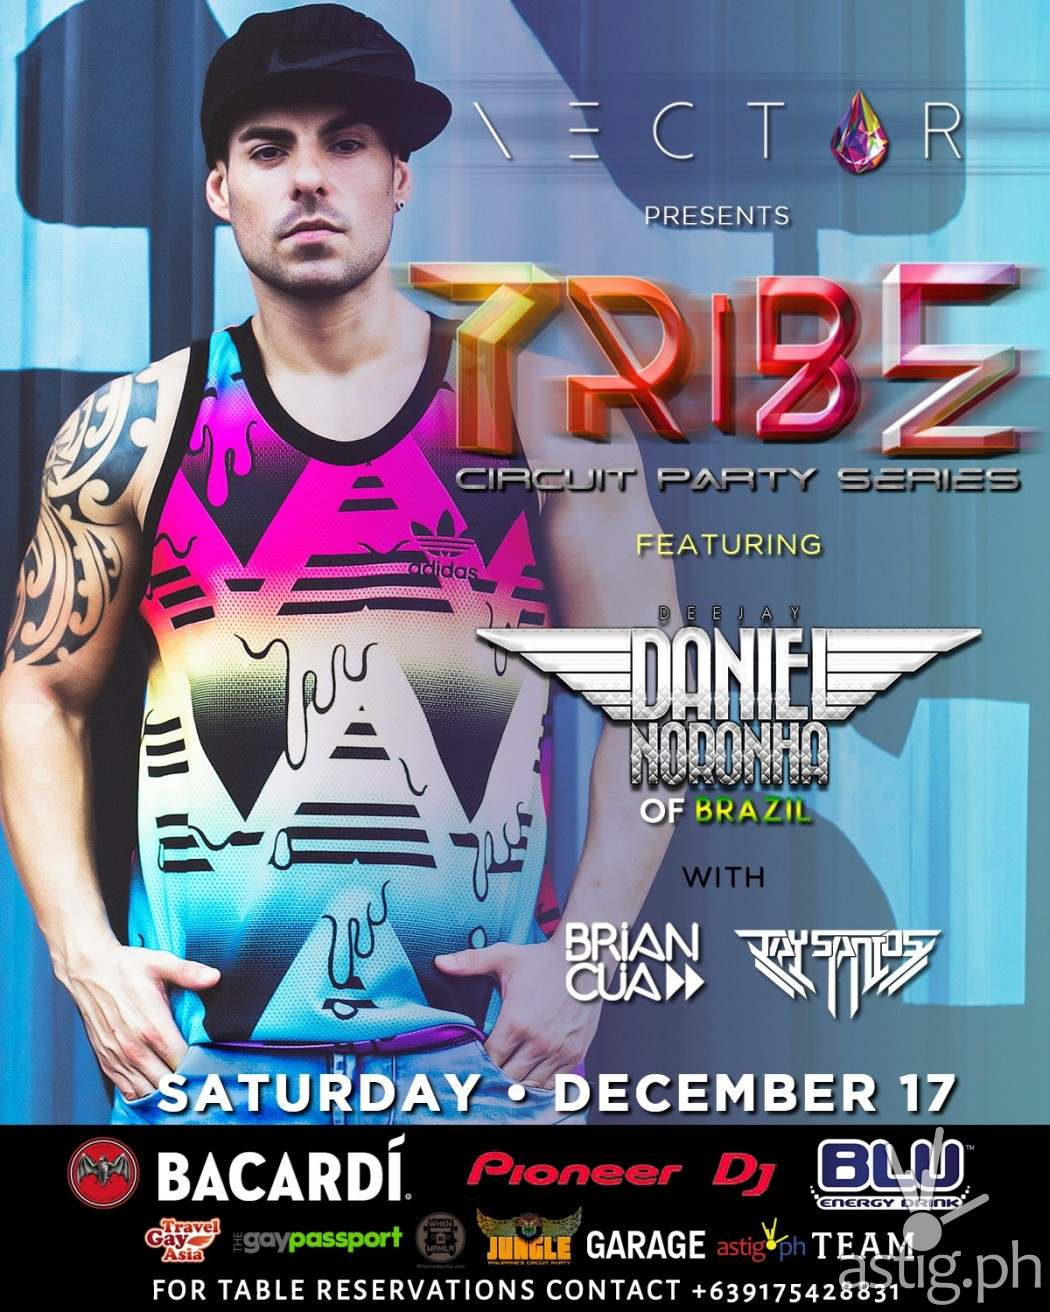 http://astig.ph/wp-content/uploads/2016/12/Tribe-Circuit-Party-at-Nectar-Nightclub-1050x1312.jpeg